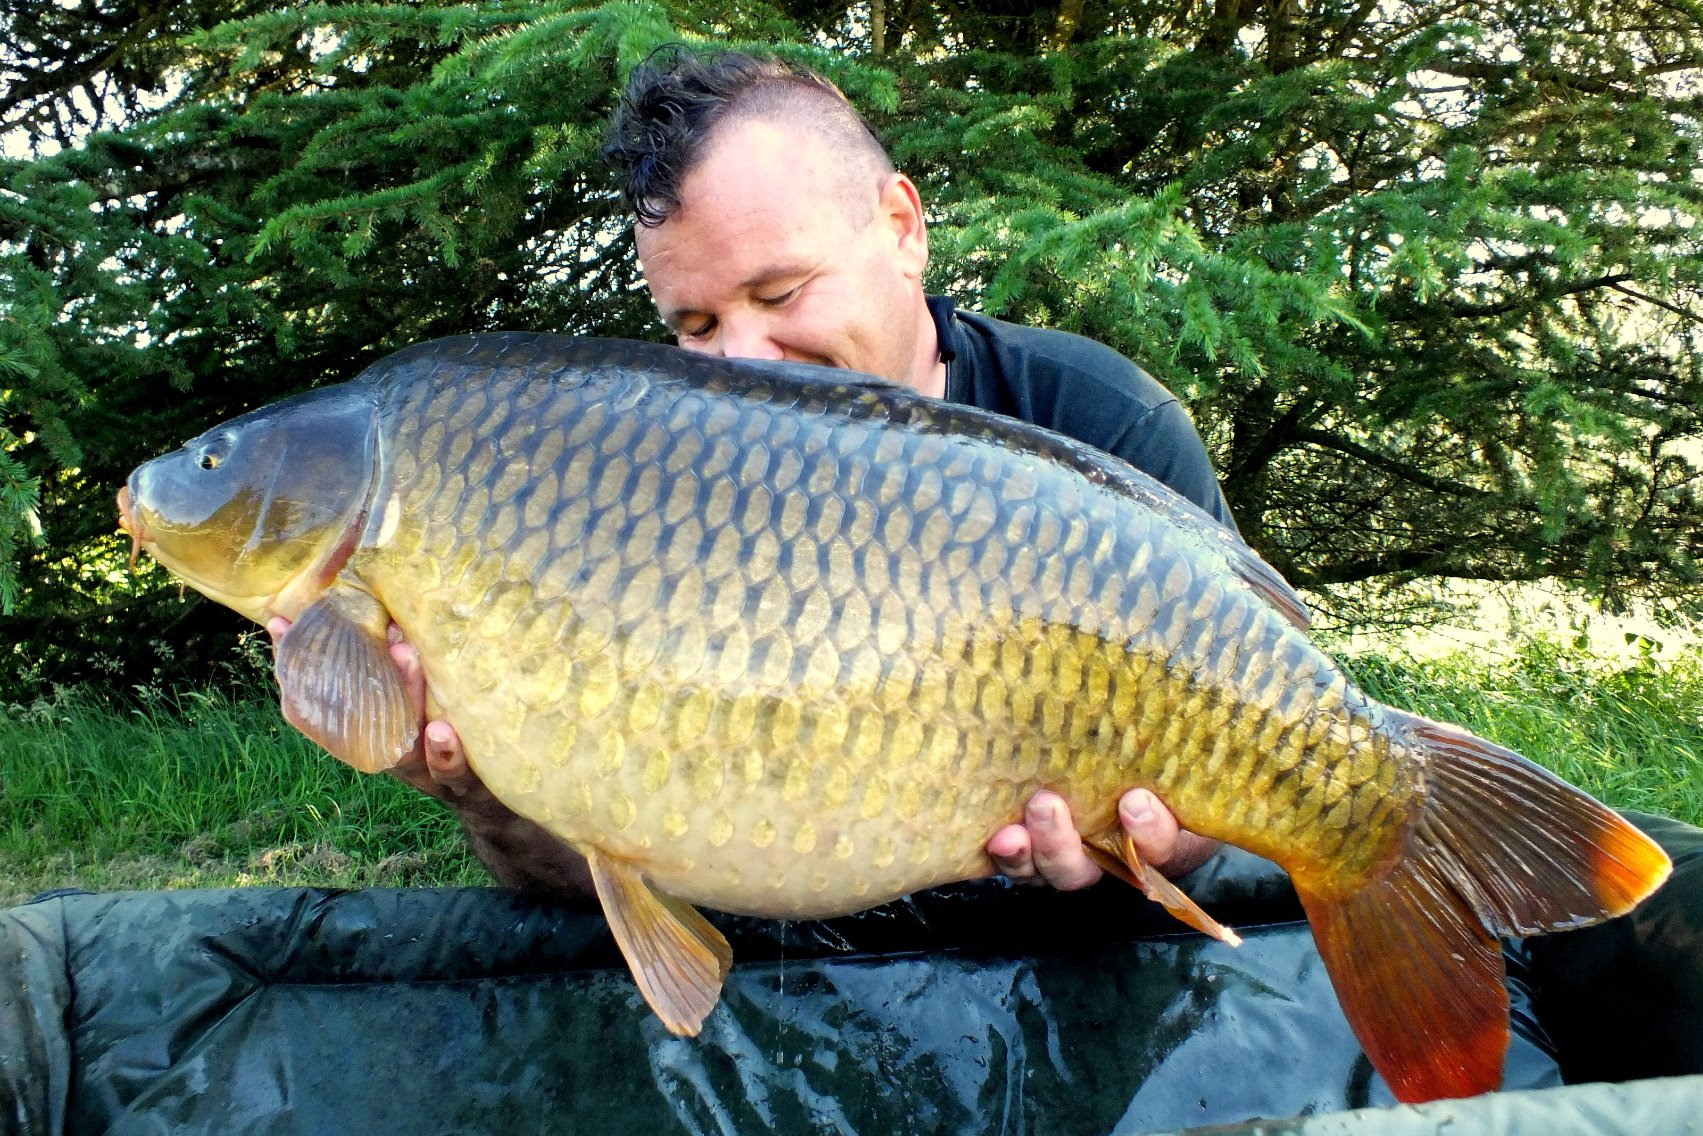 Carp Fishing in France - Majestic Carp